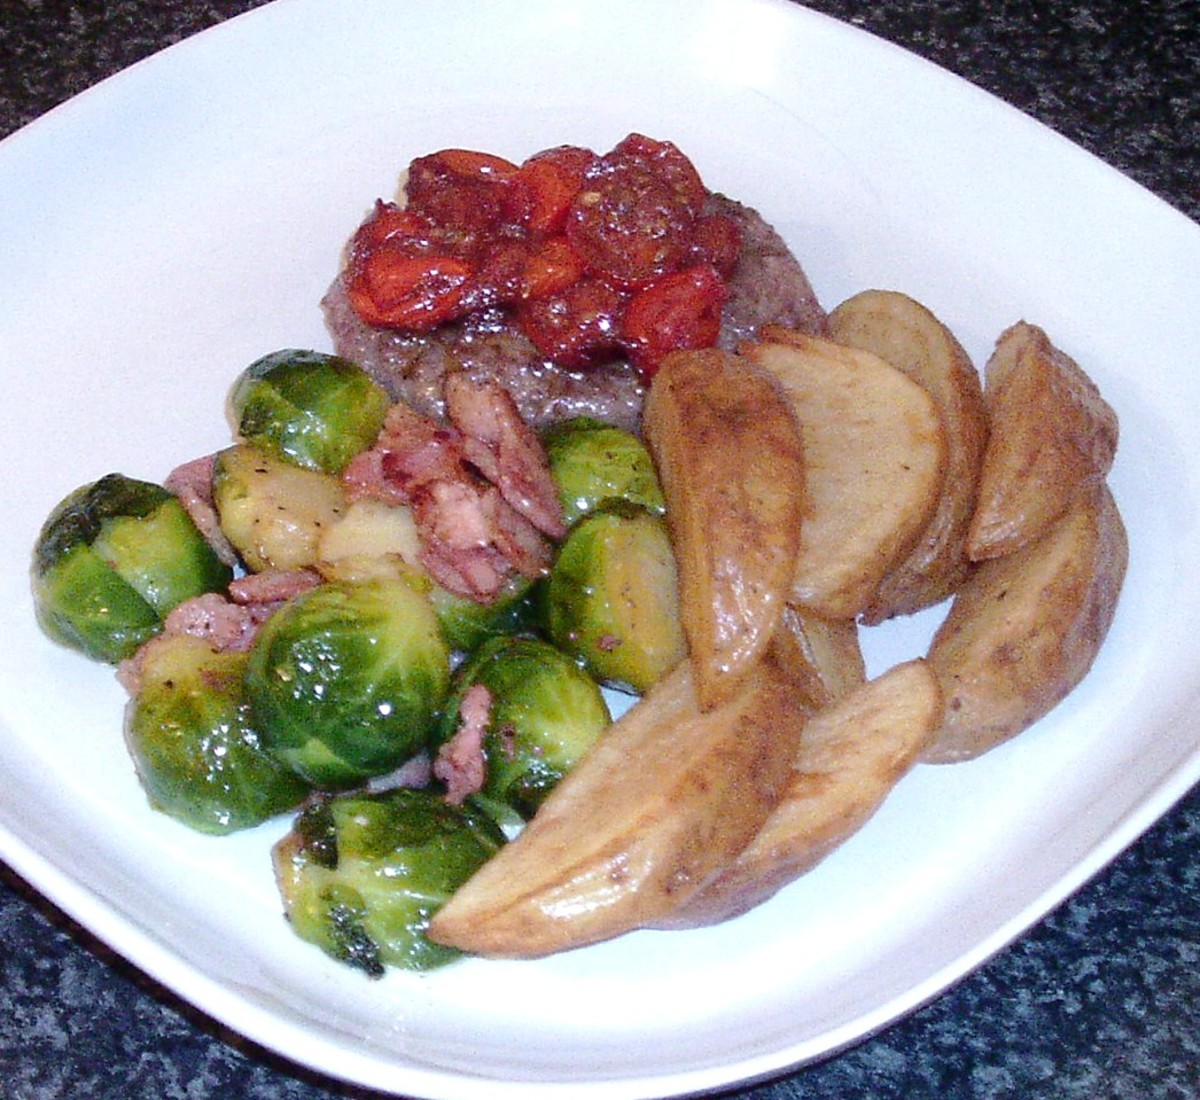 Wild boar and apple burger, topped with homemade tomato chutney, is served with Brussels sprouts and bacon and homemade wedges